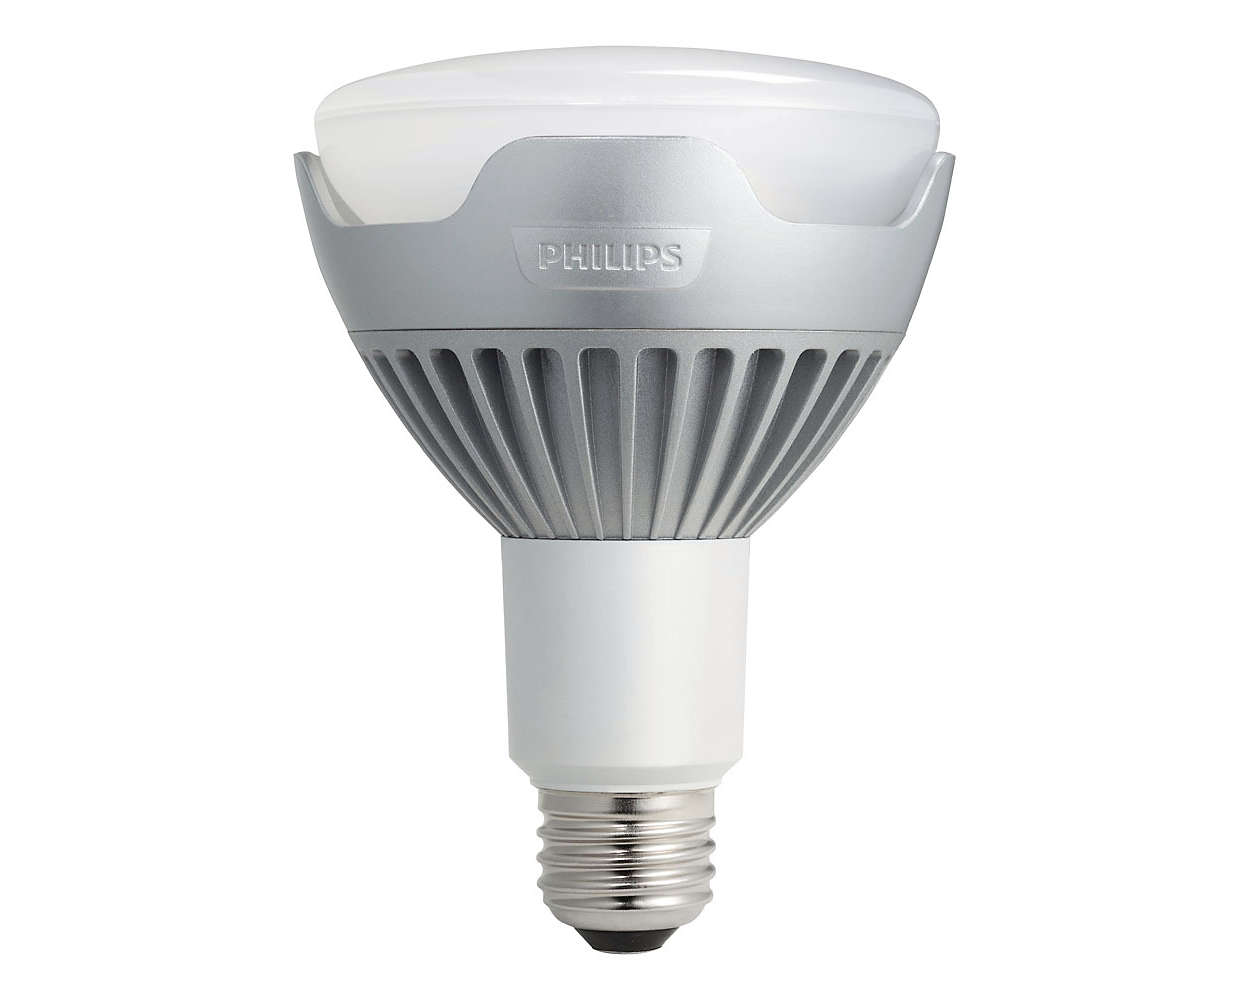 AmbientLED Energy saving indoor flood light 046677414900 | Philips